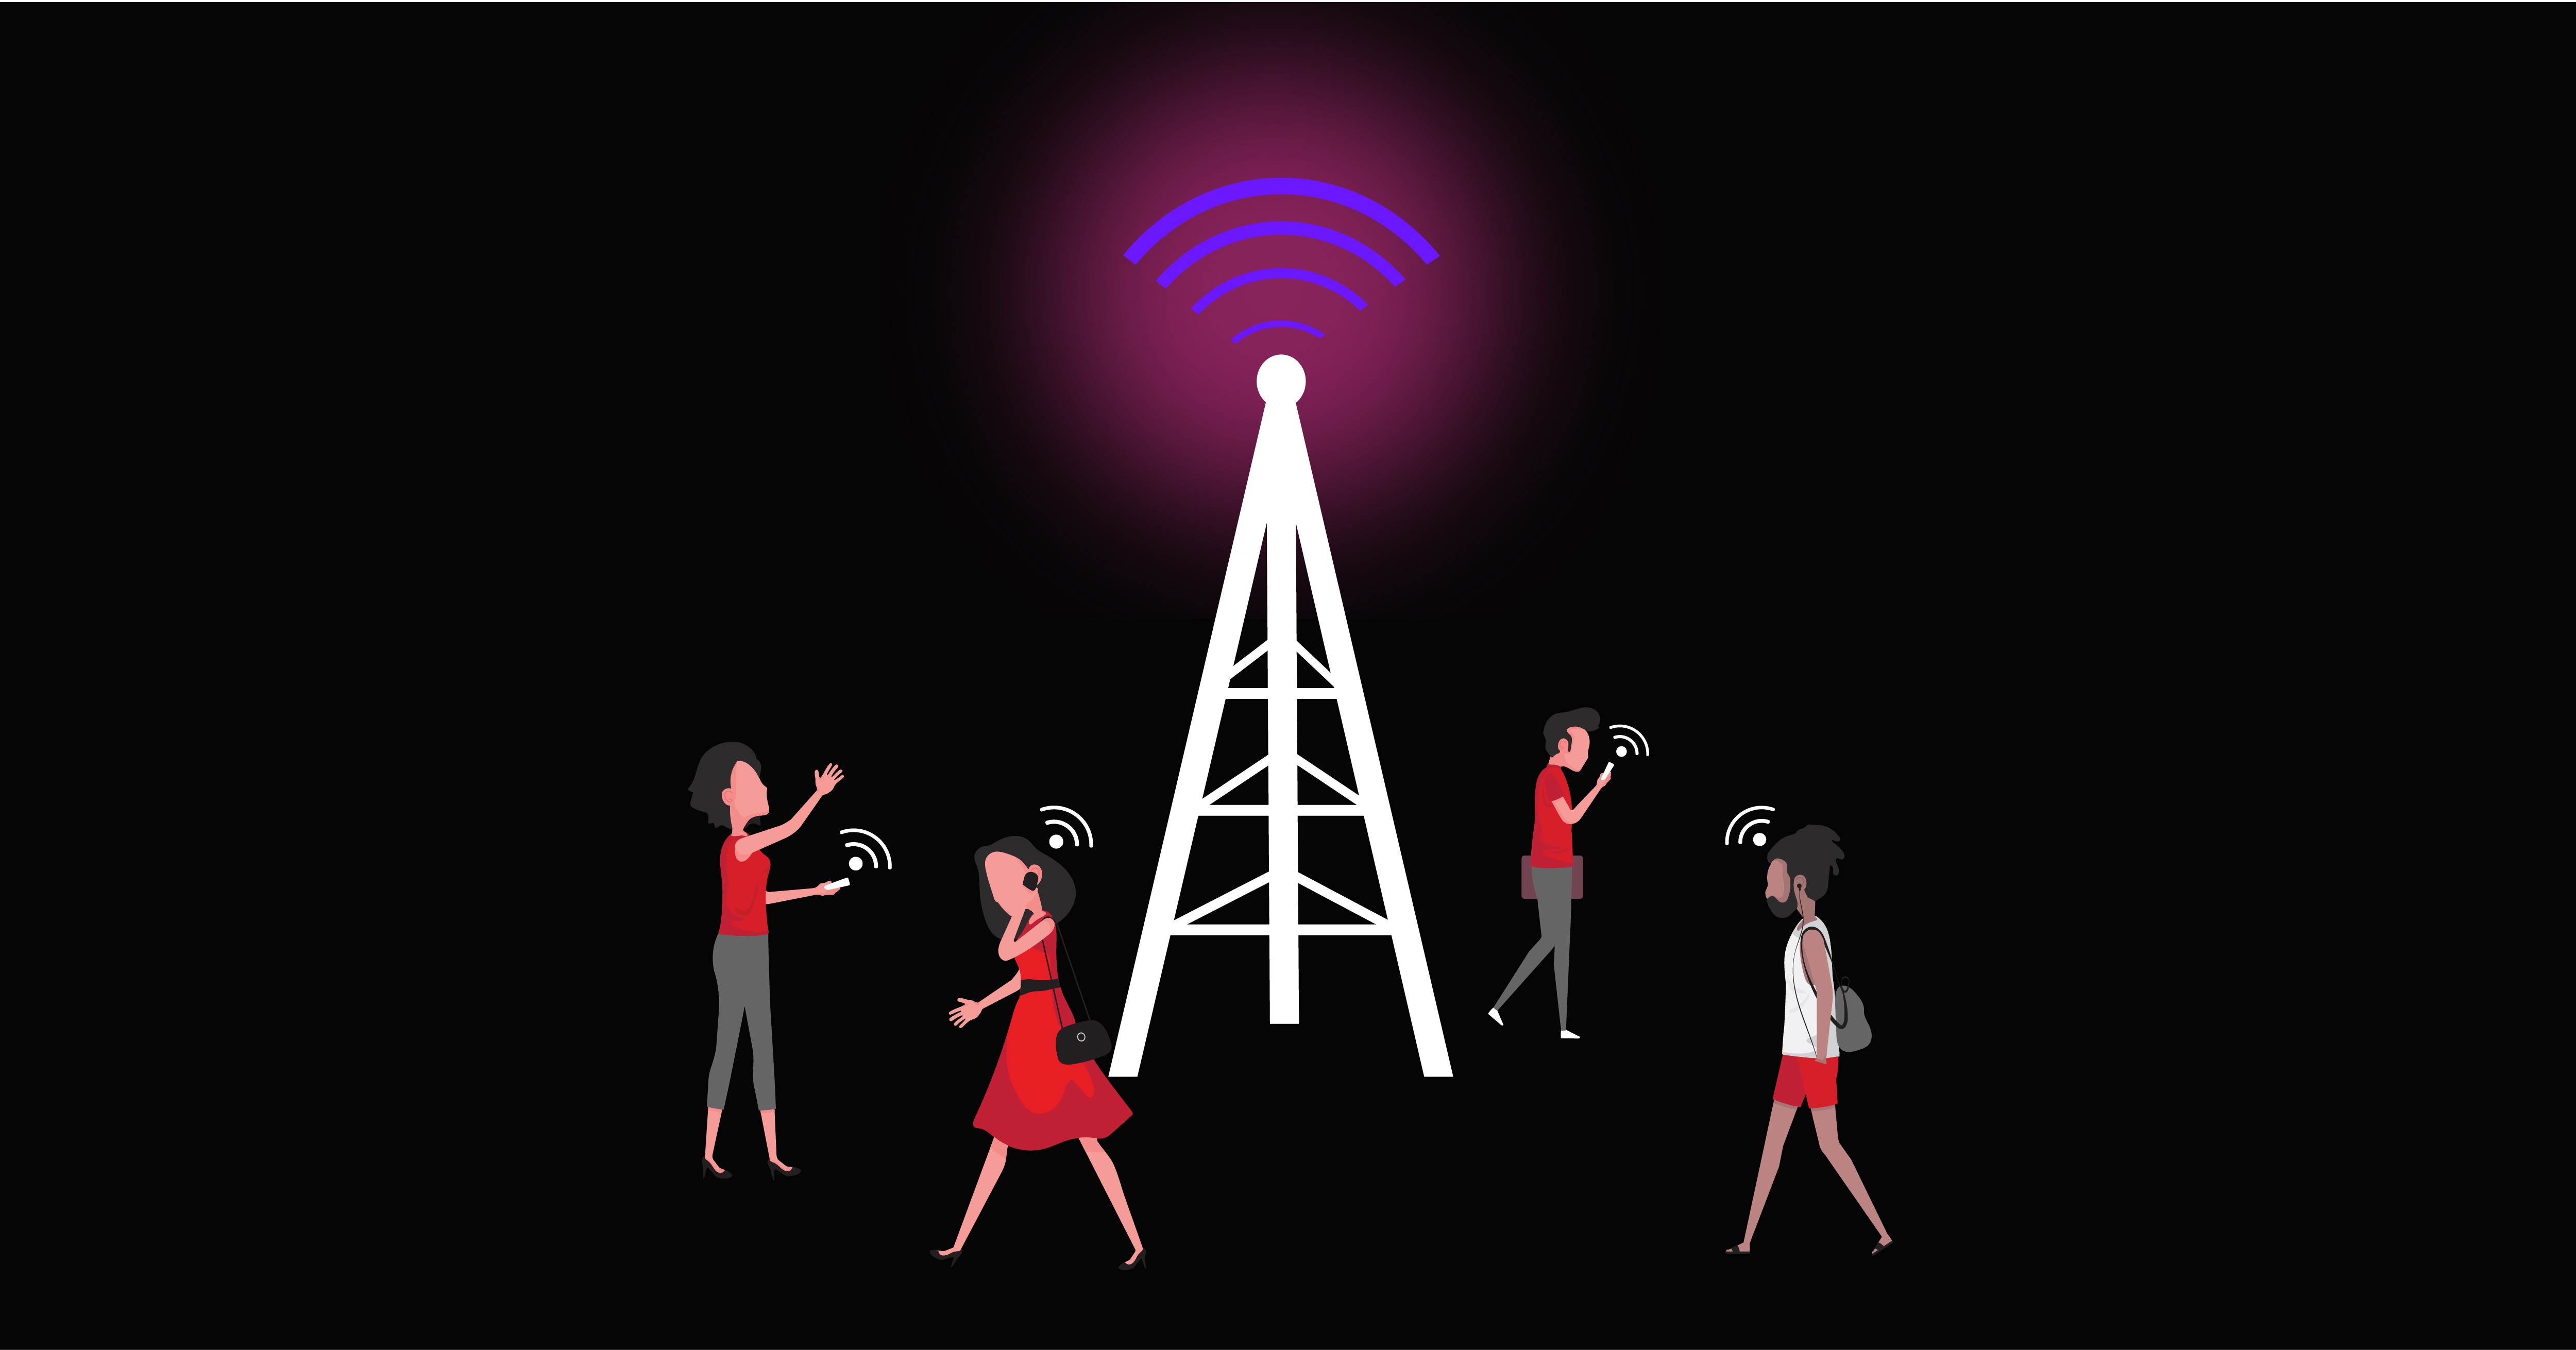 The Road to 5G: The Test of Customer Loyalty